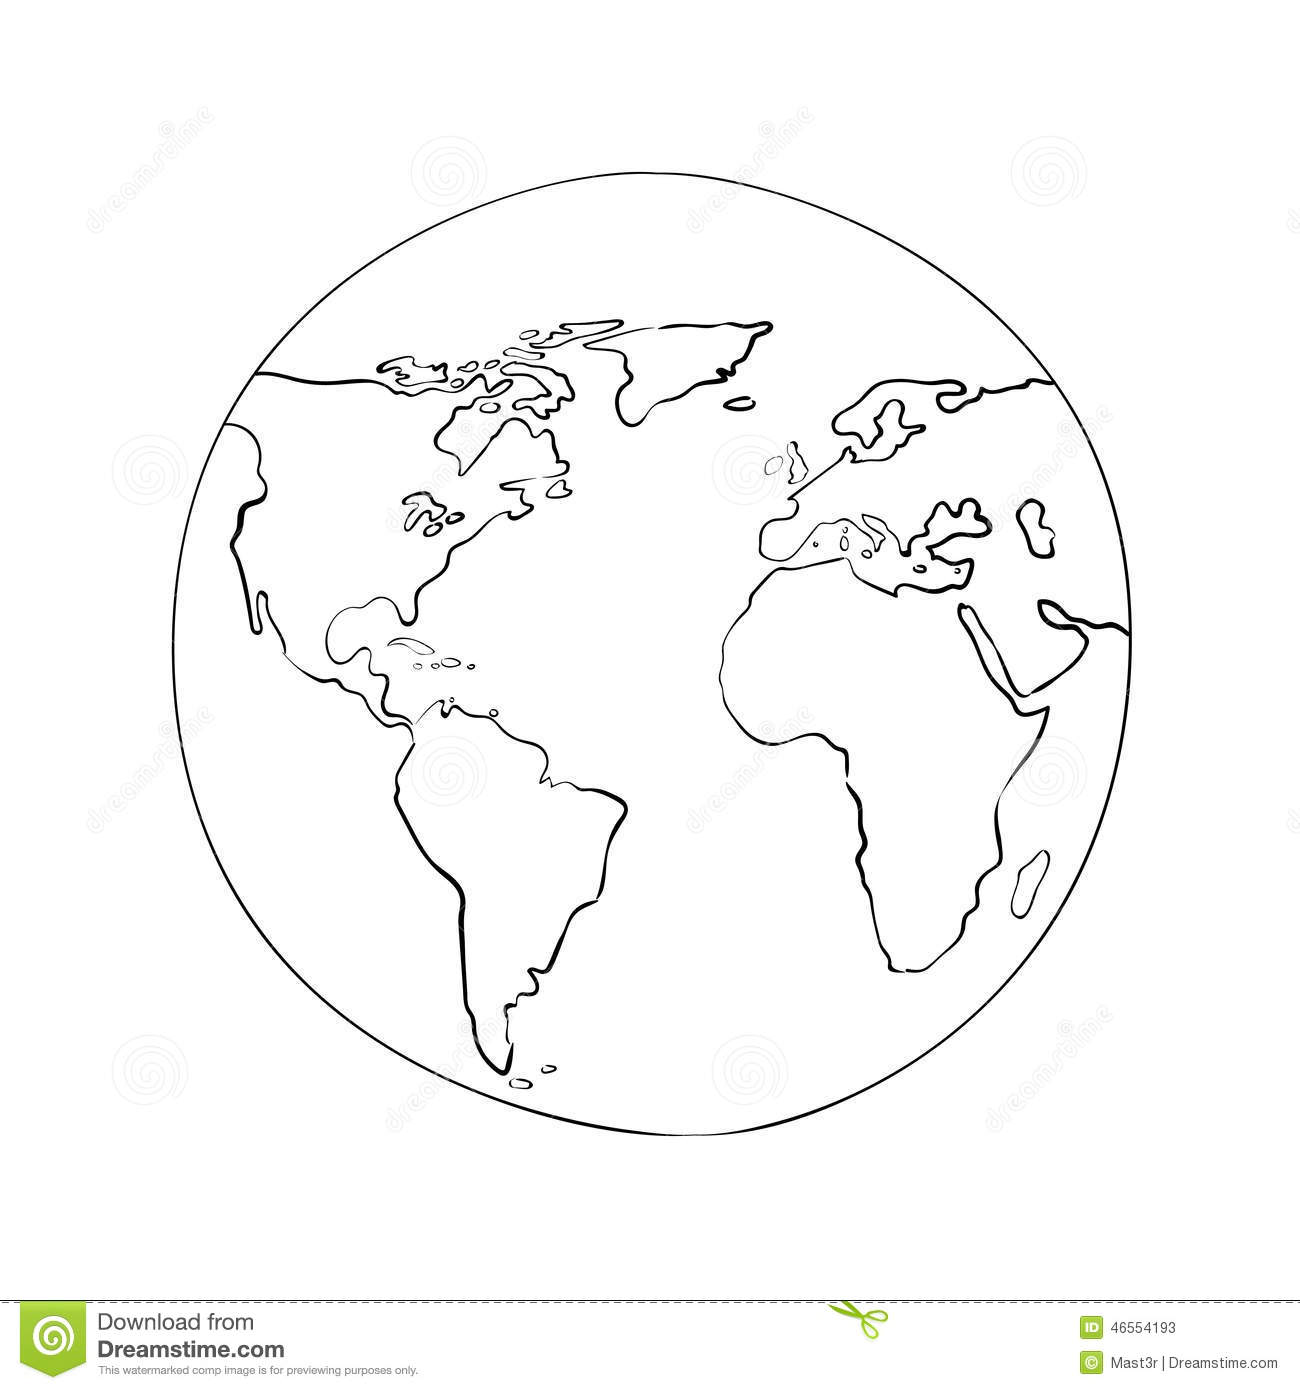 Sketch globe world map black vector illustration stock vector download comp gumiabroncs Image collections